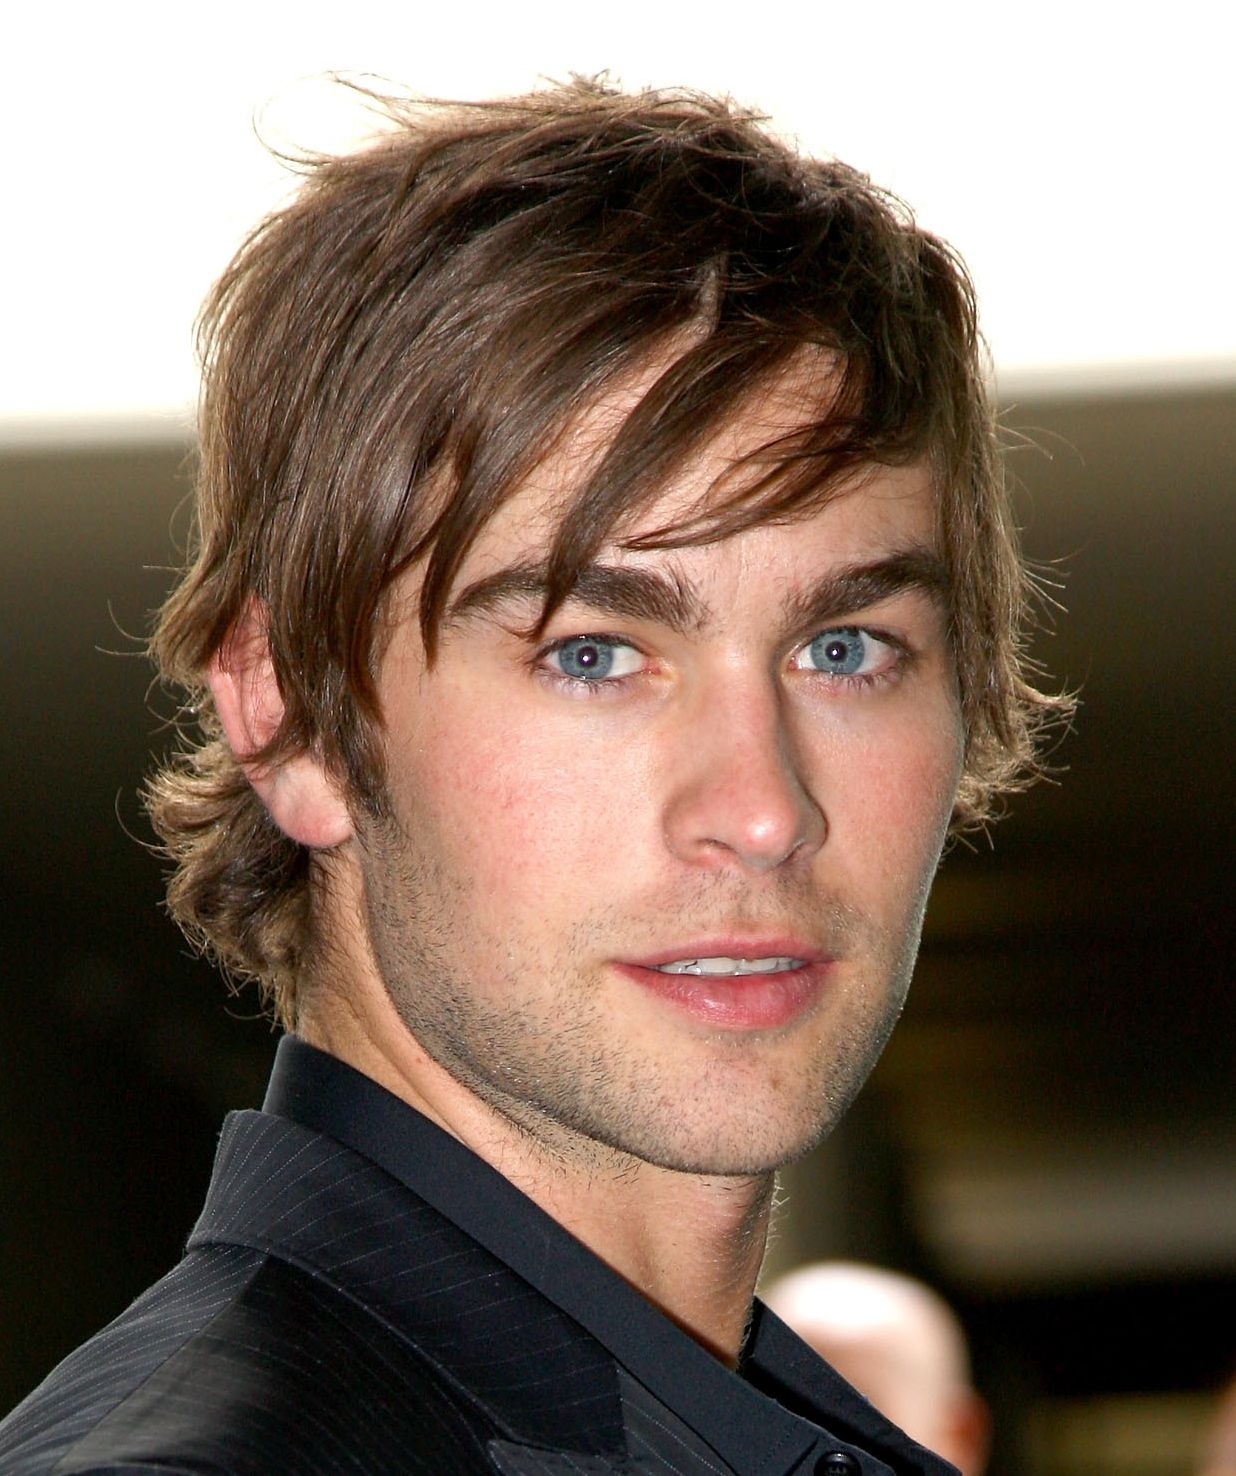 Surfer Hairstyles For Men Mens Shaggy Hairstyles New Images Wallpaper Hair Cut